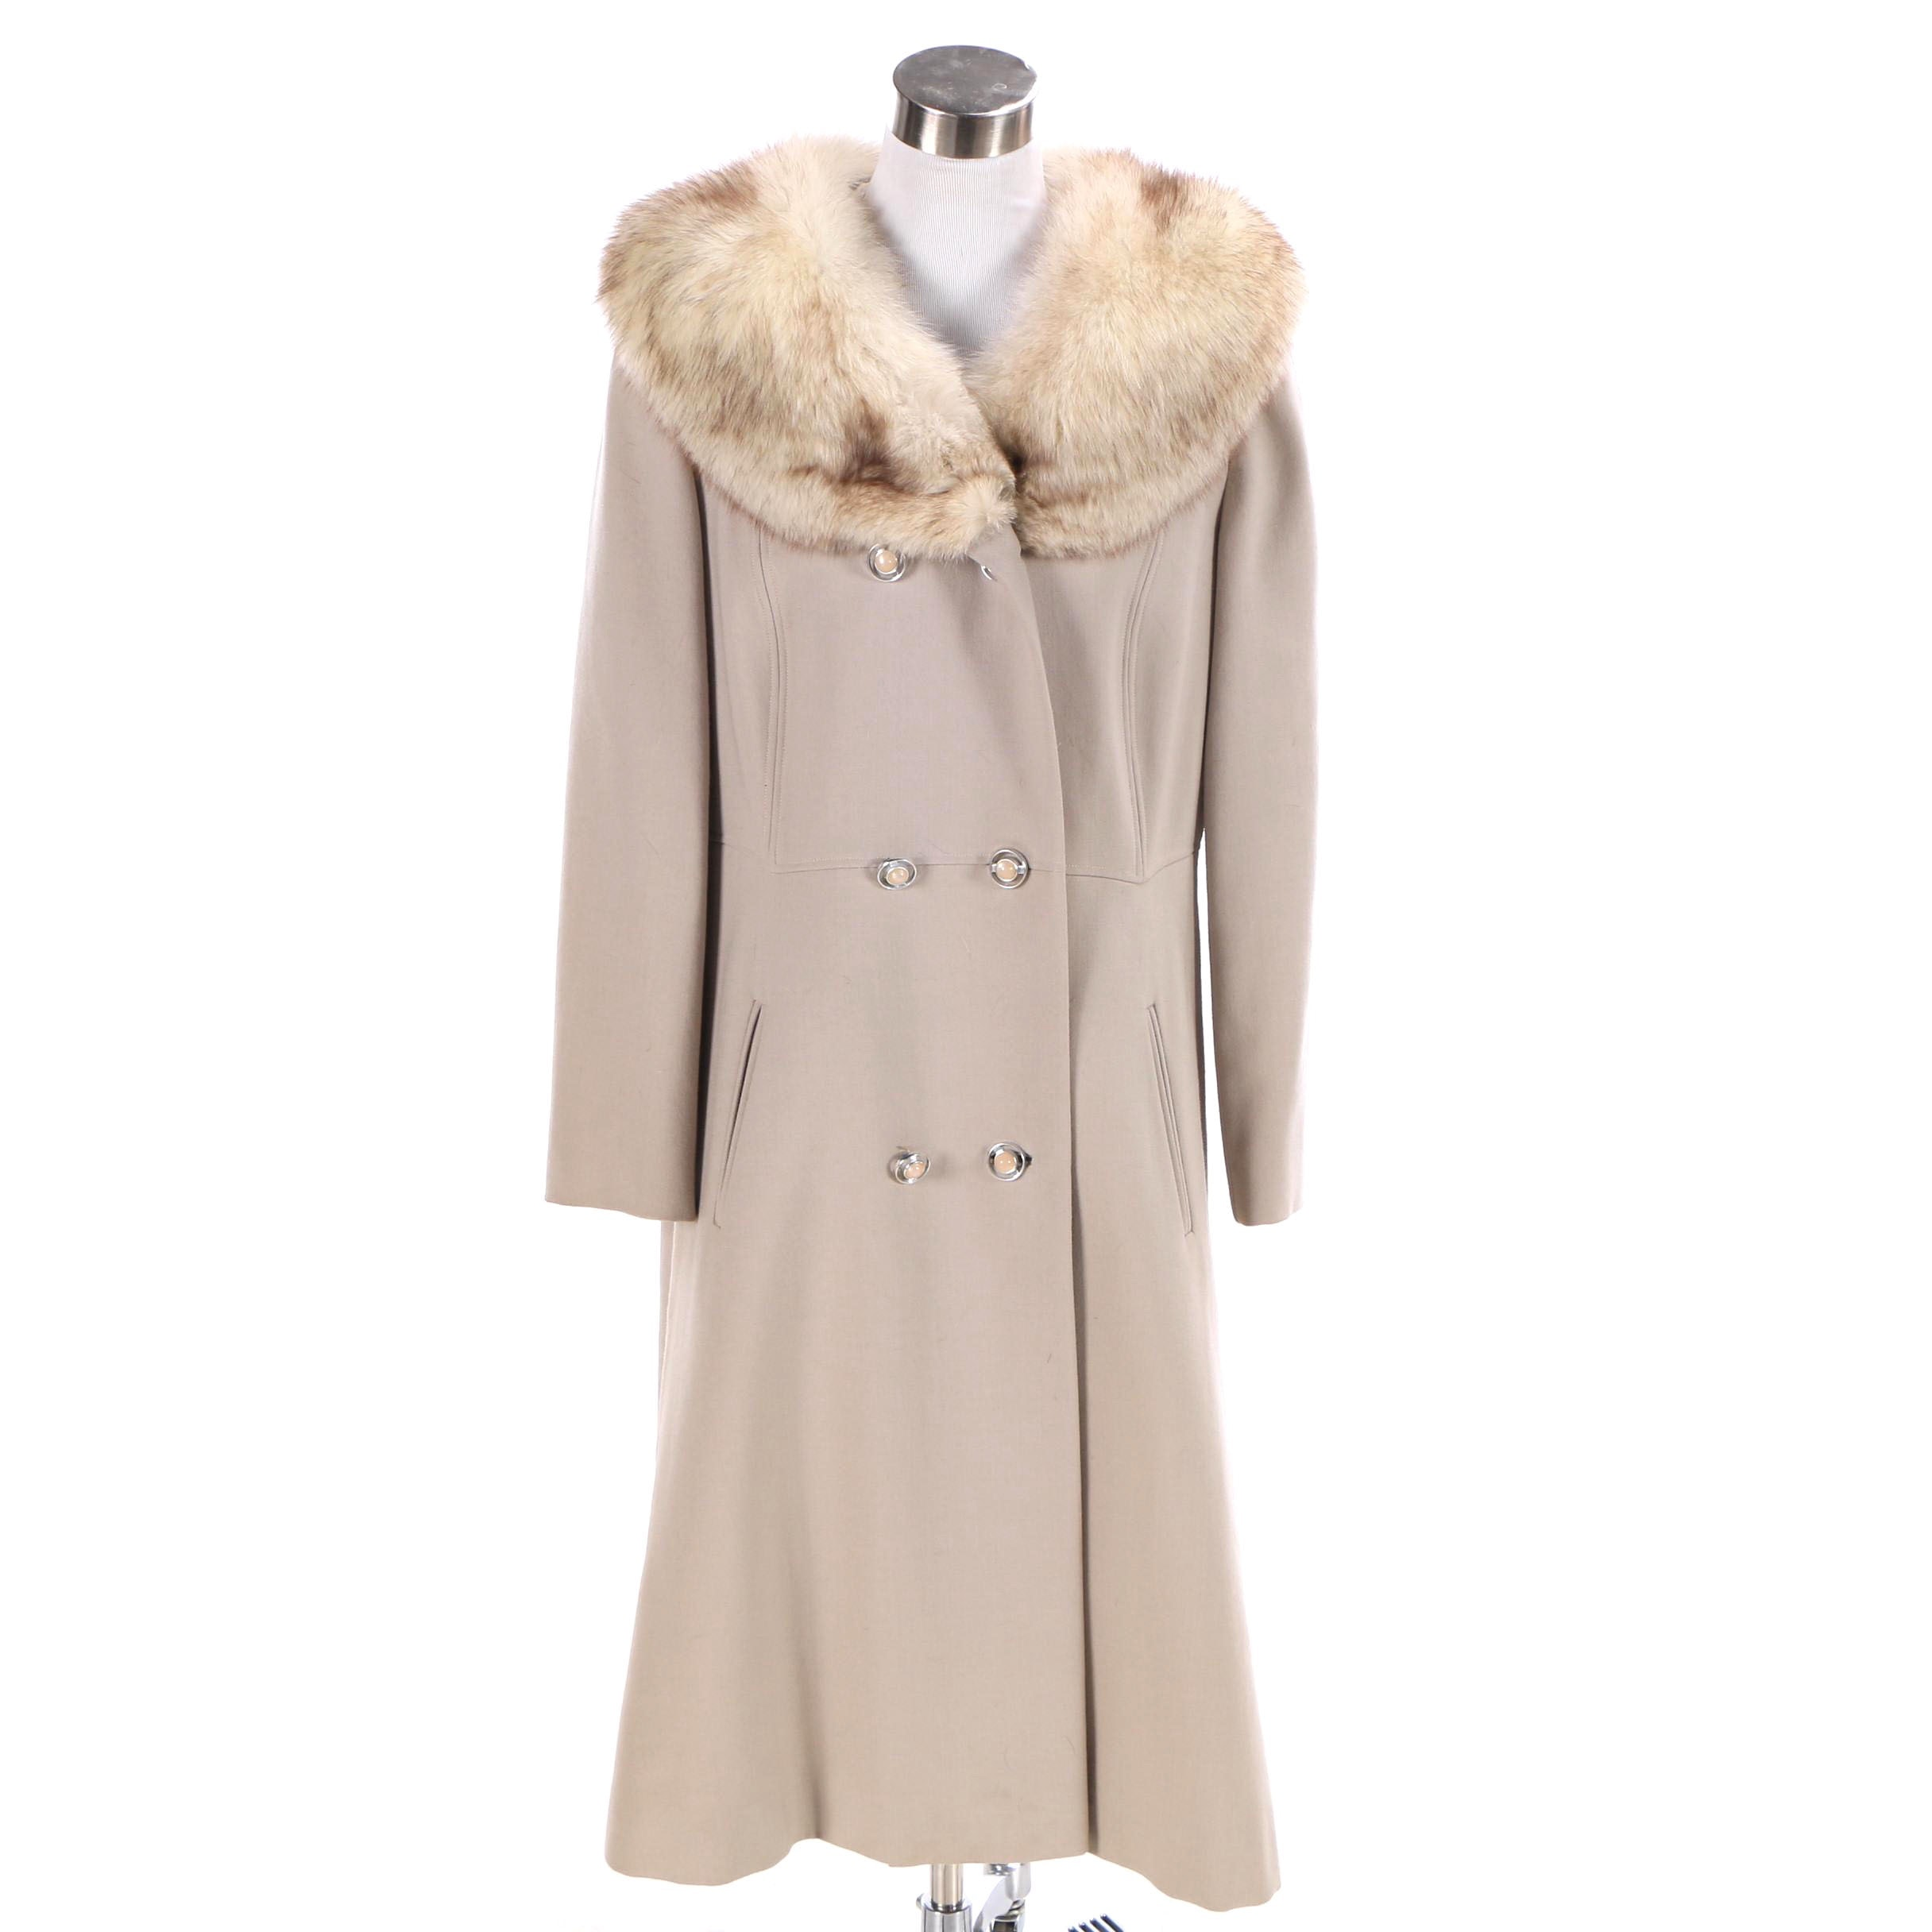 Women's 1970s Vintage Lorendale Wool Princess Coat with Fox Fur Collar